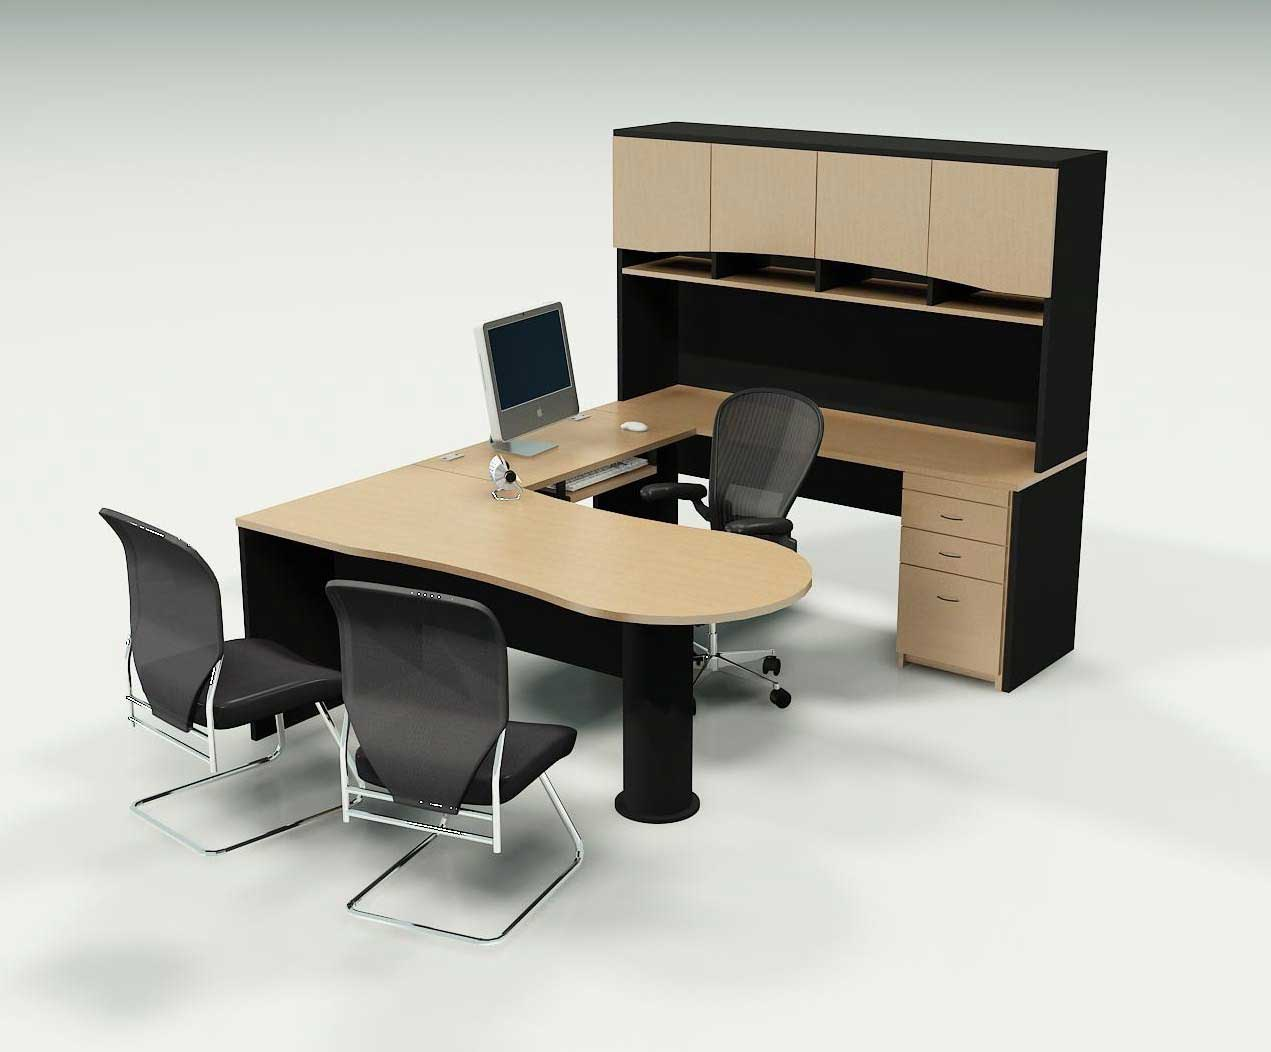 Office Chairs Costco | Office Depot Desks | Office Depot Desks